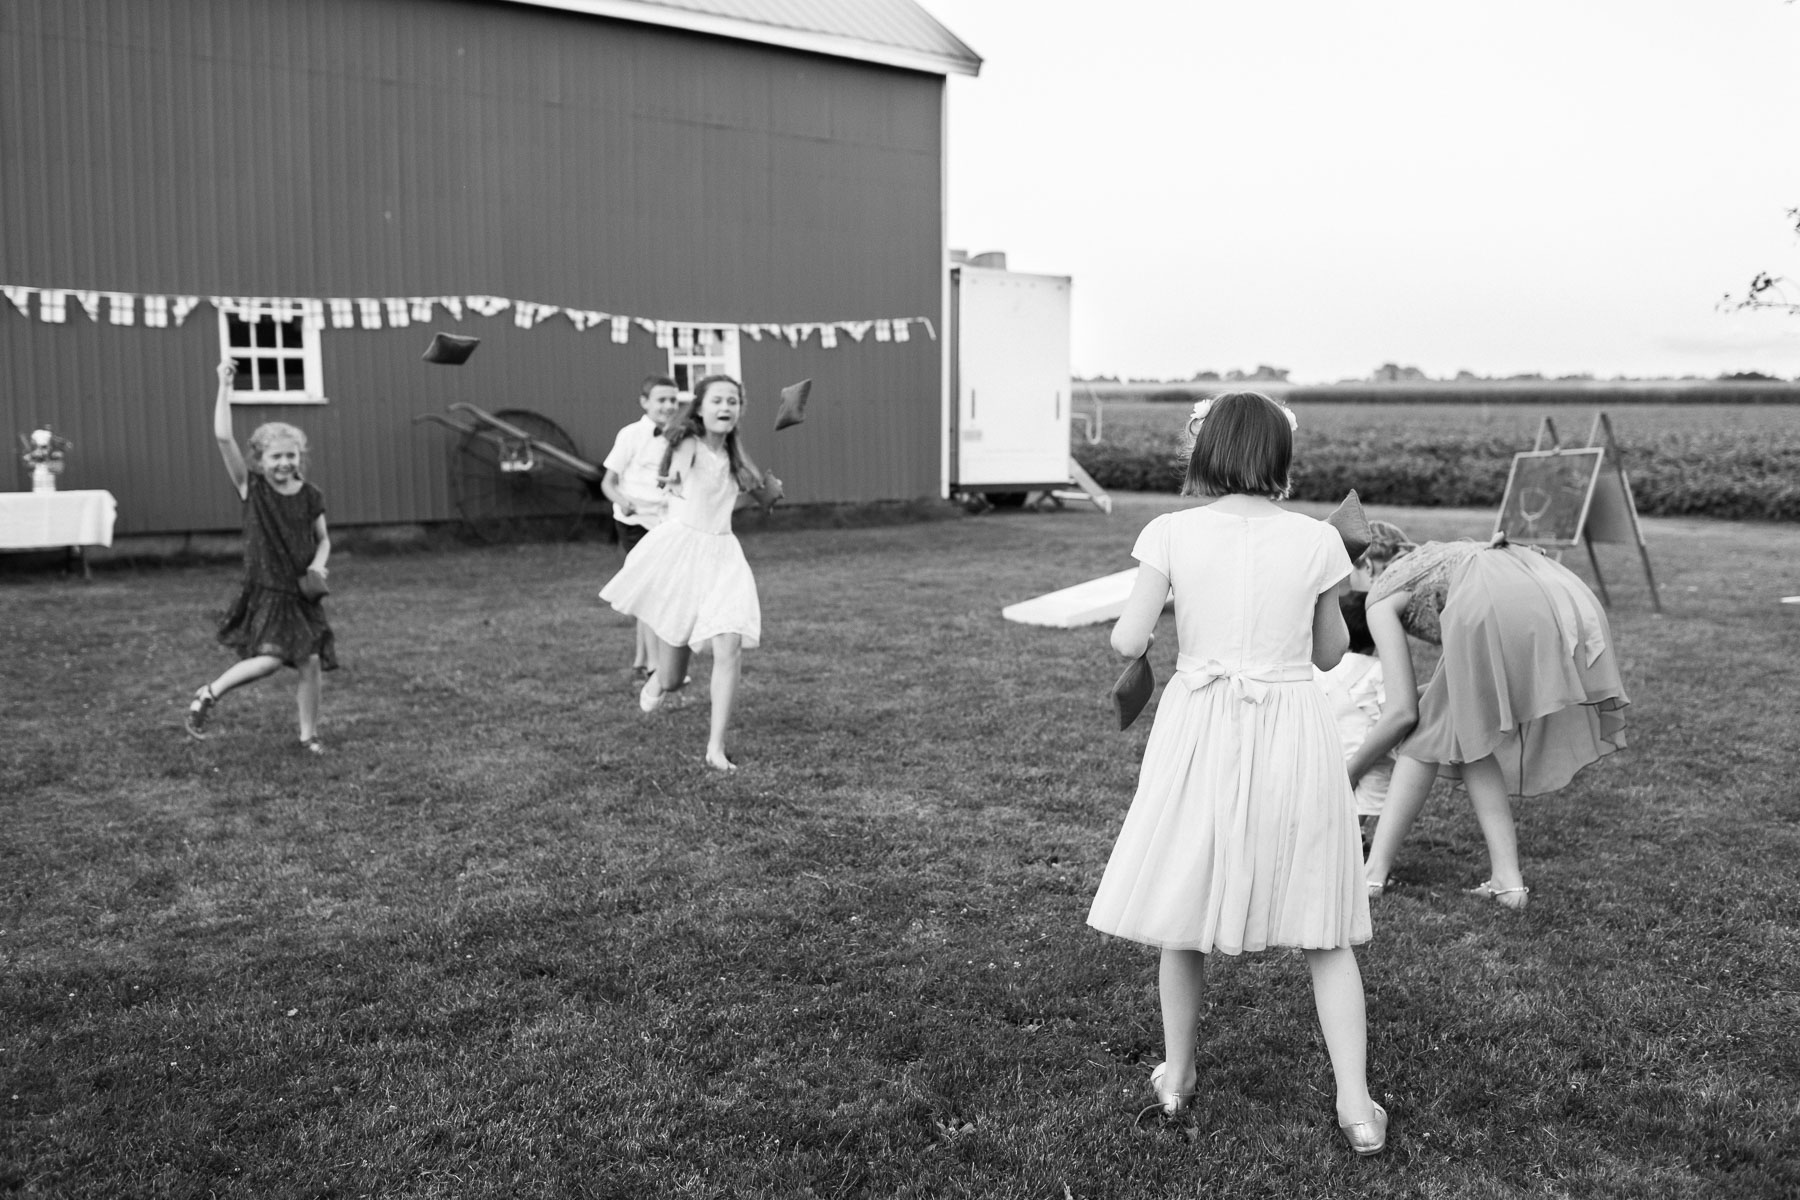 Kids throwing beanbags with barn in background at this rural farm wedding.